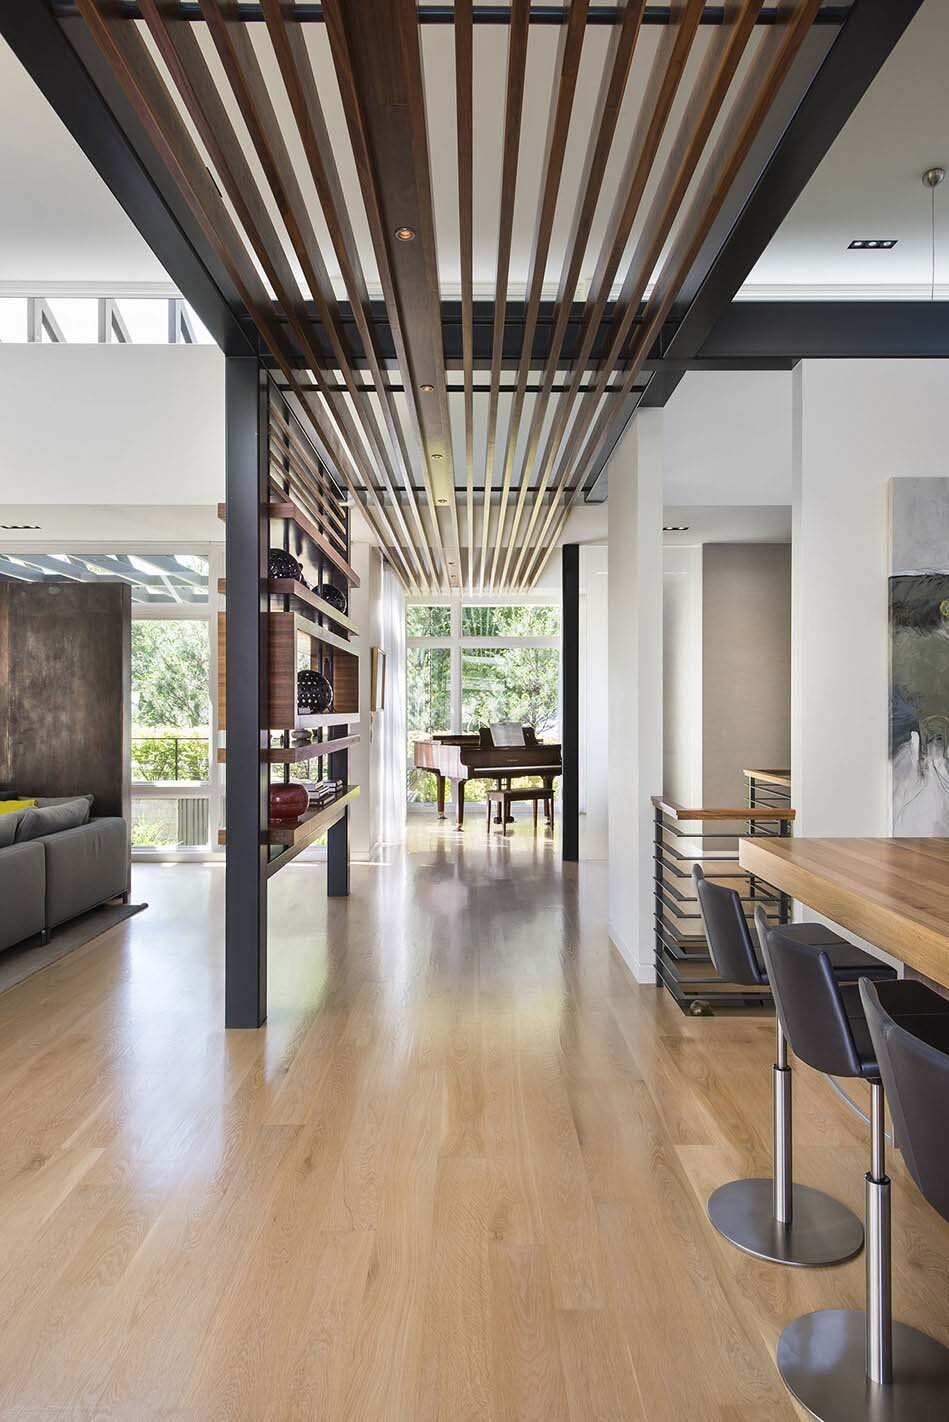 Single Story Ranch With Large Atrium Spaces